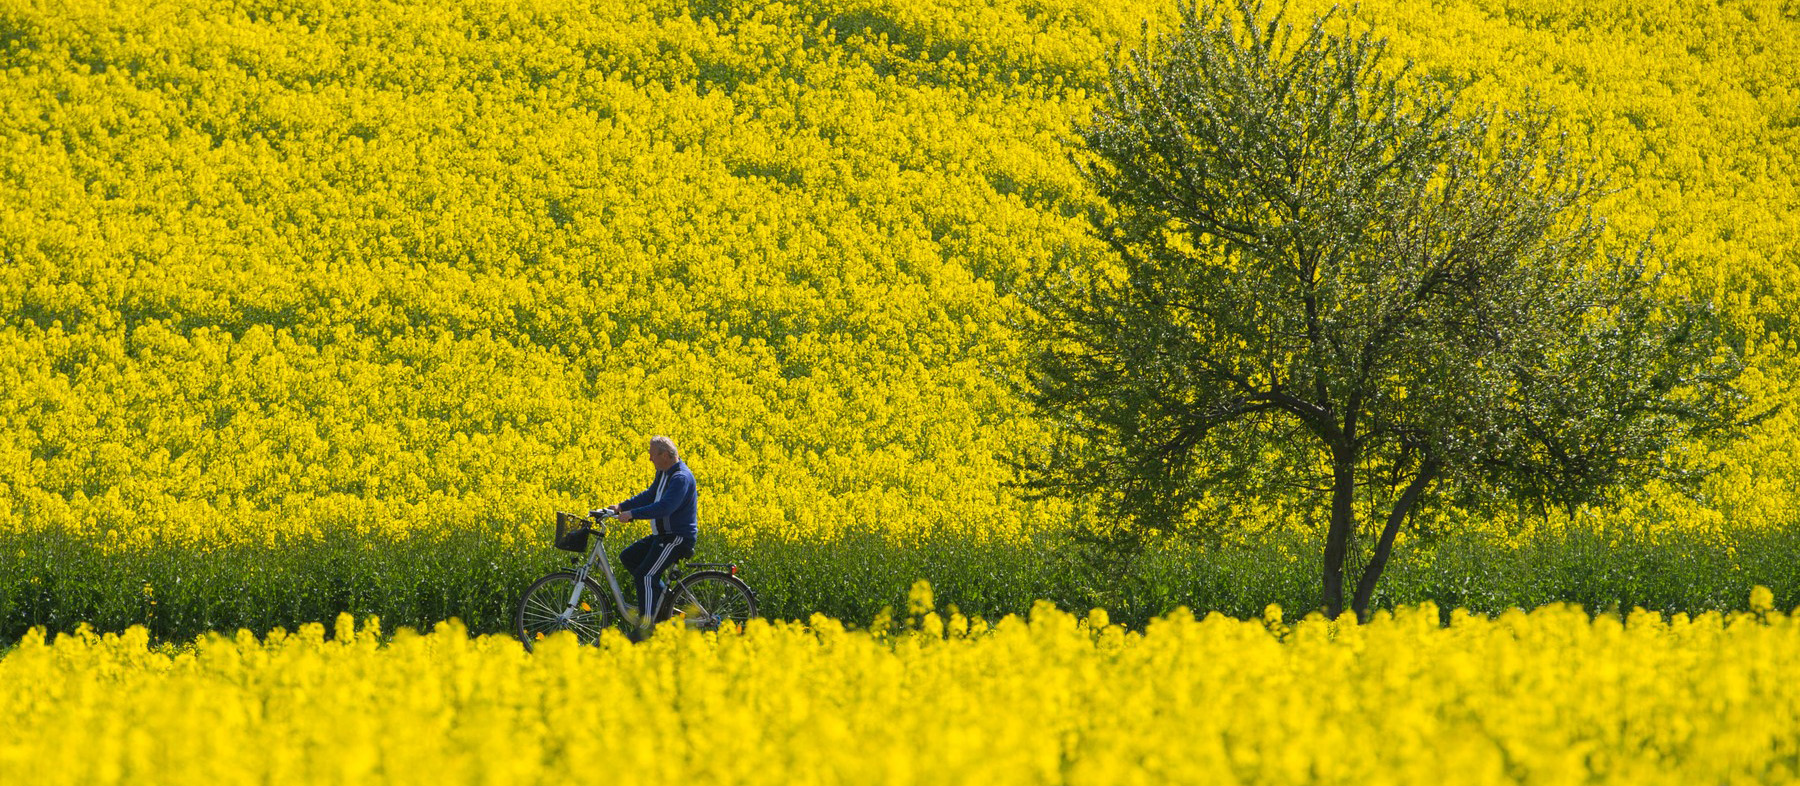 Best Spring Cycling Trips: Watch the Flowers Bloom From ...